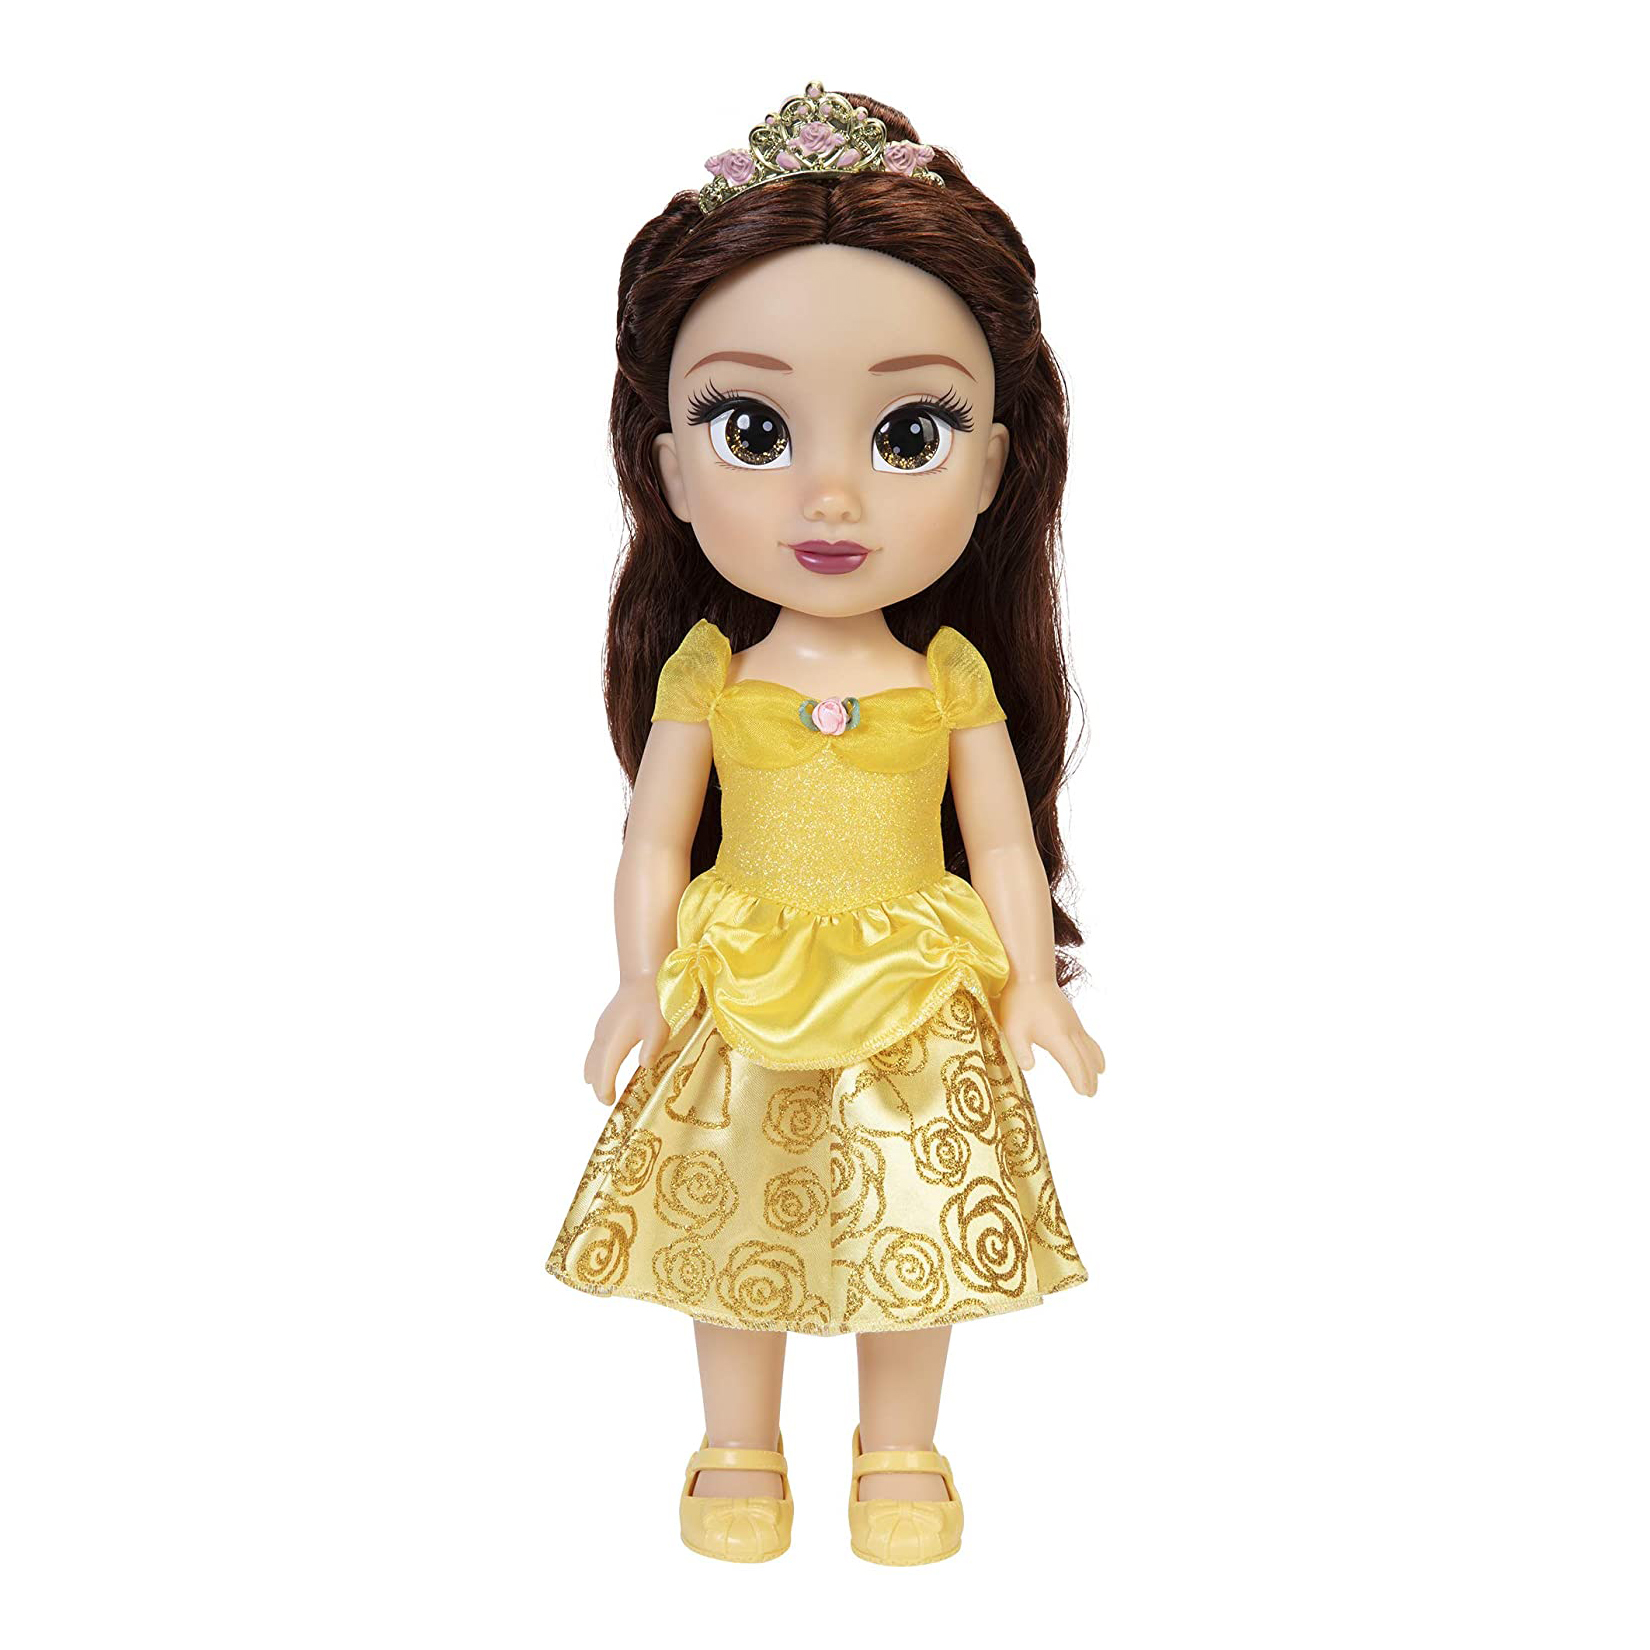 Toddler Doll Toys R Us Disney Princess Explore Your World Toddler Doll Belle At